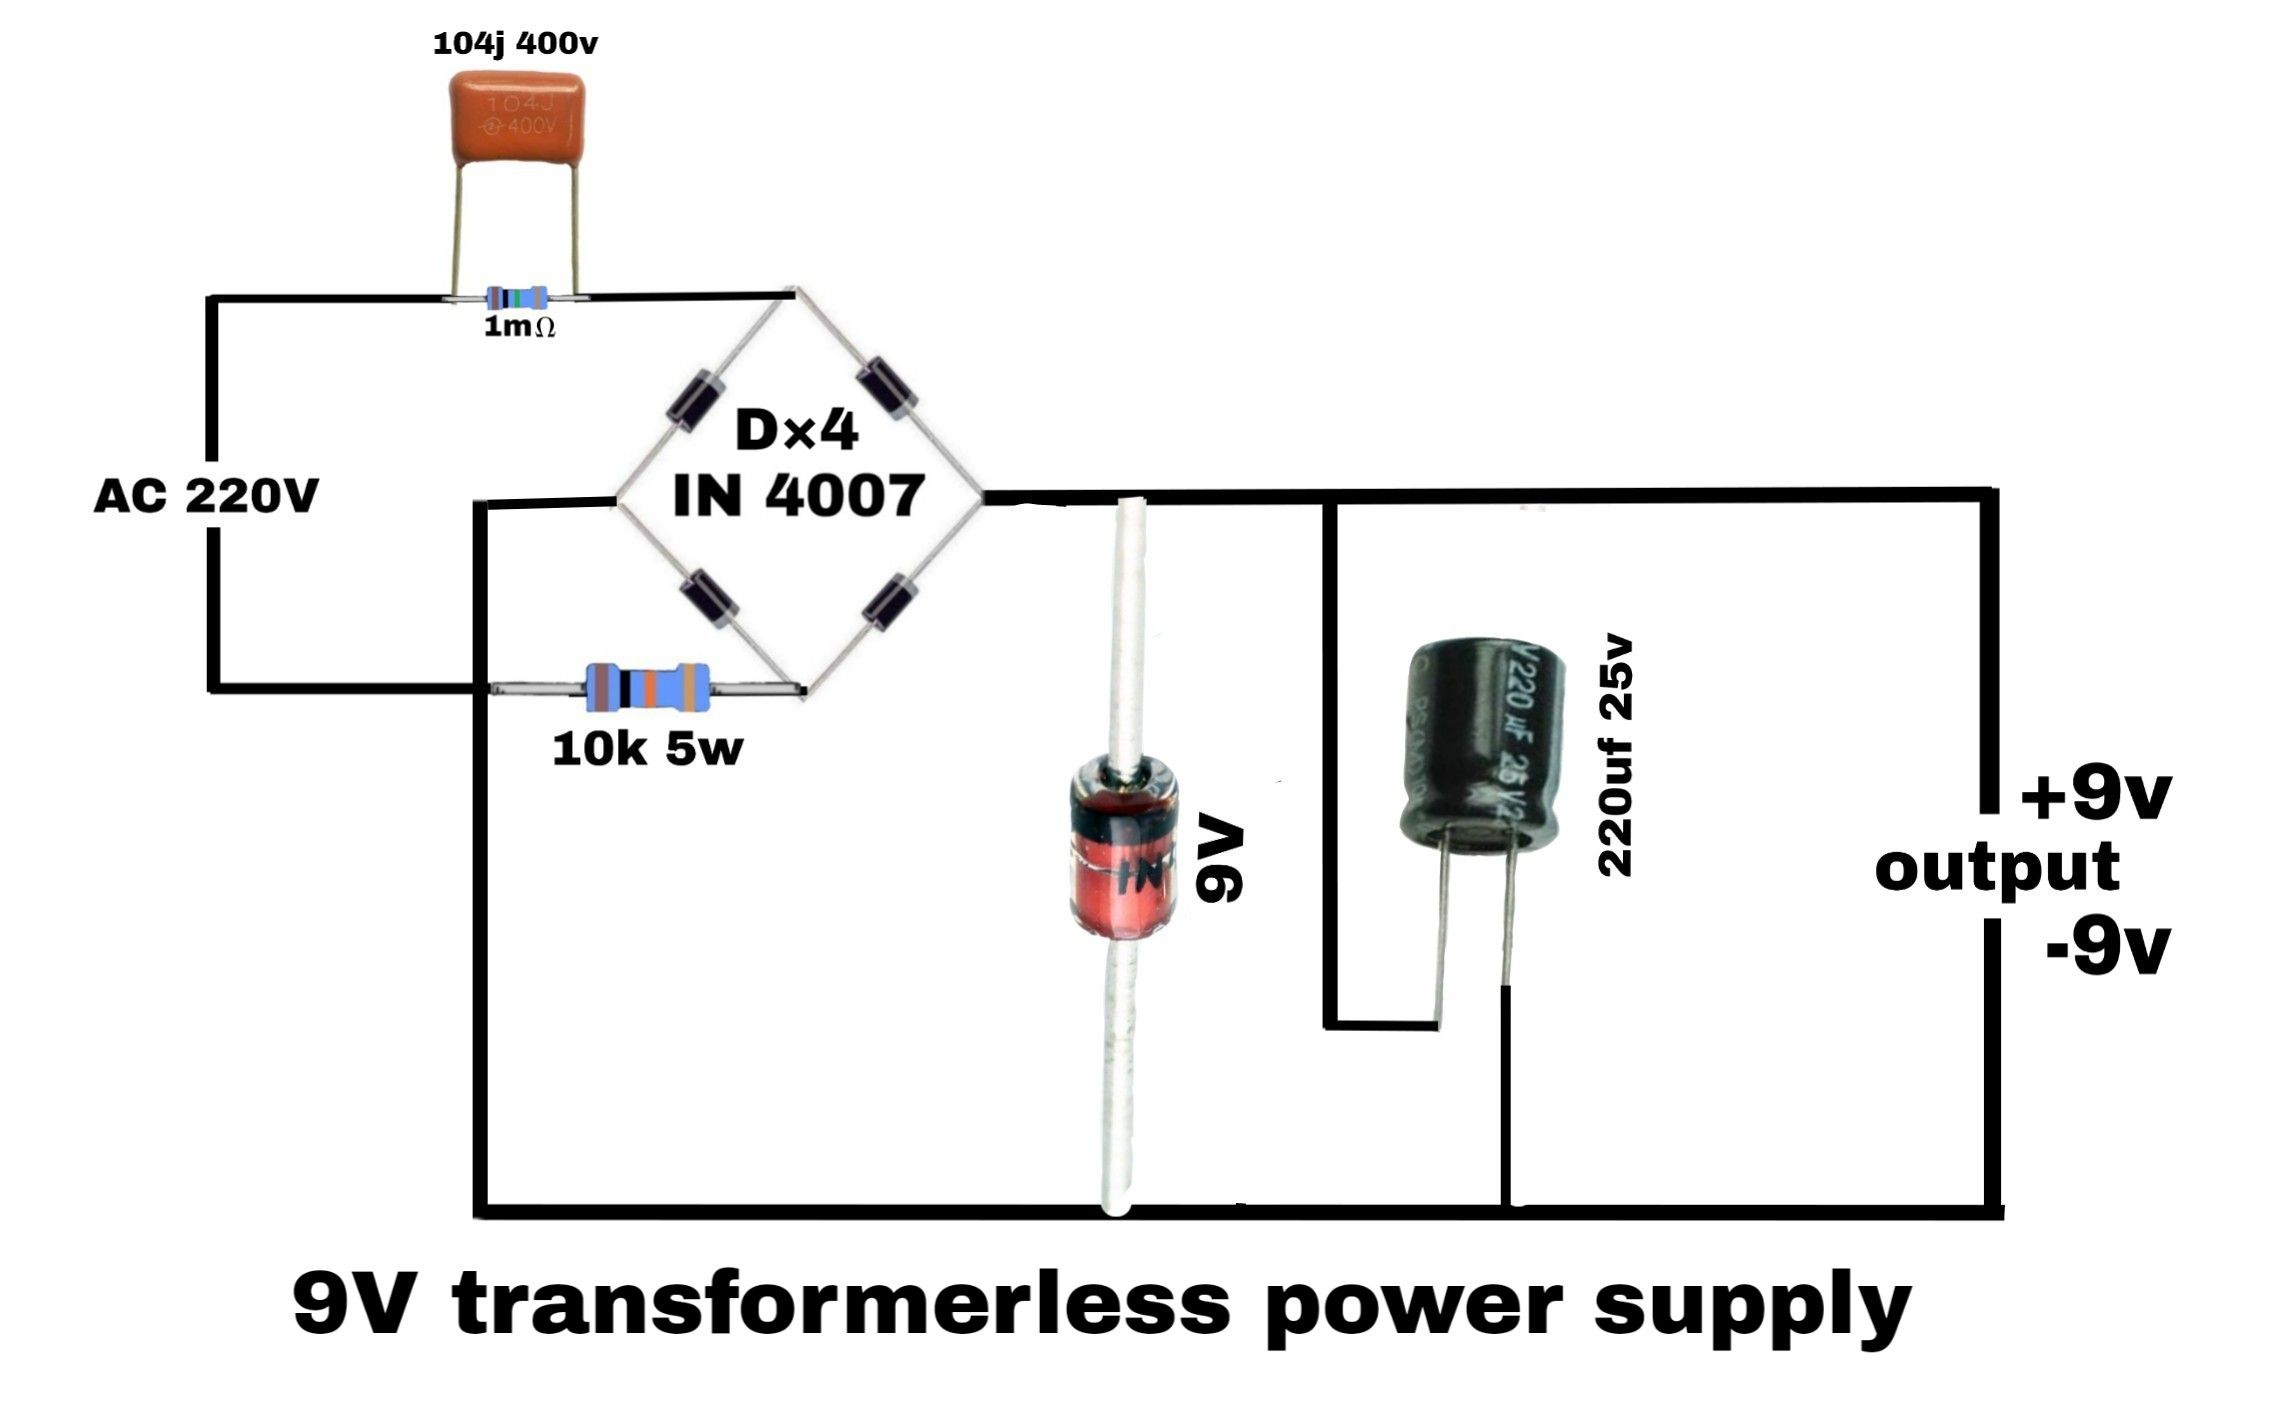 ac 220v to dc 9v transformerless power supply electronics circuit circuit diagram moreover transformerless power supply circuit diagram [ 2289 x 1402 Pixel ]